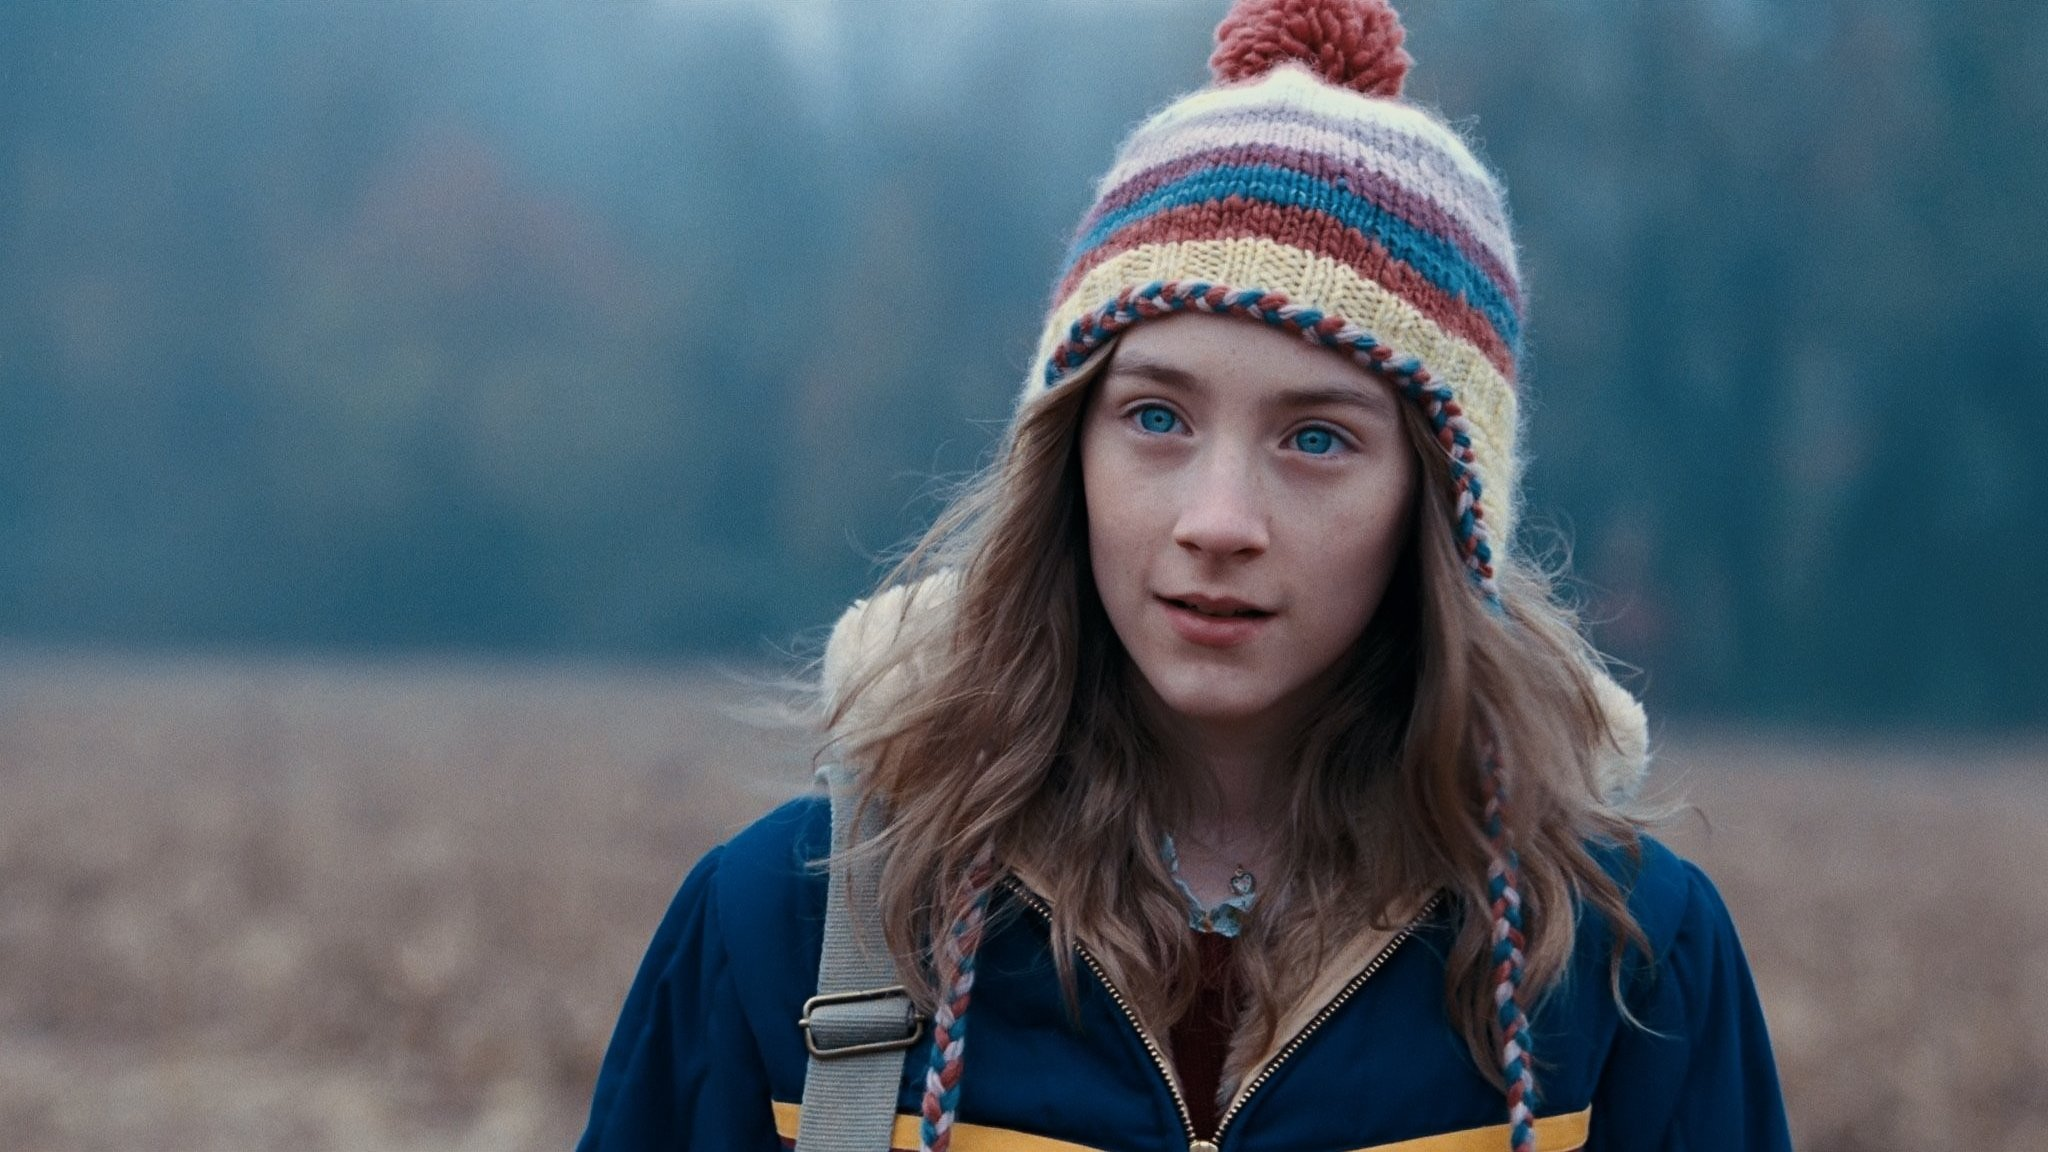 the-lovely-bones-the-lovely-bones-saoirse-ronan-saoirse-ronan-girl-actress-view-eyes-hat-the-field